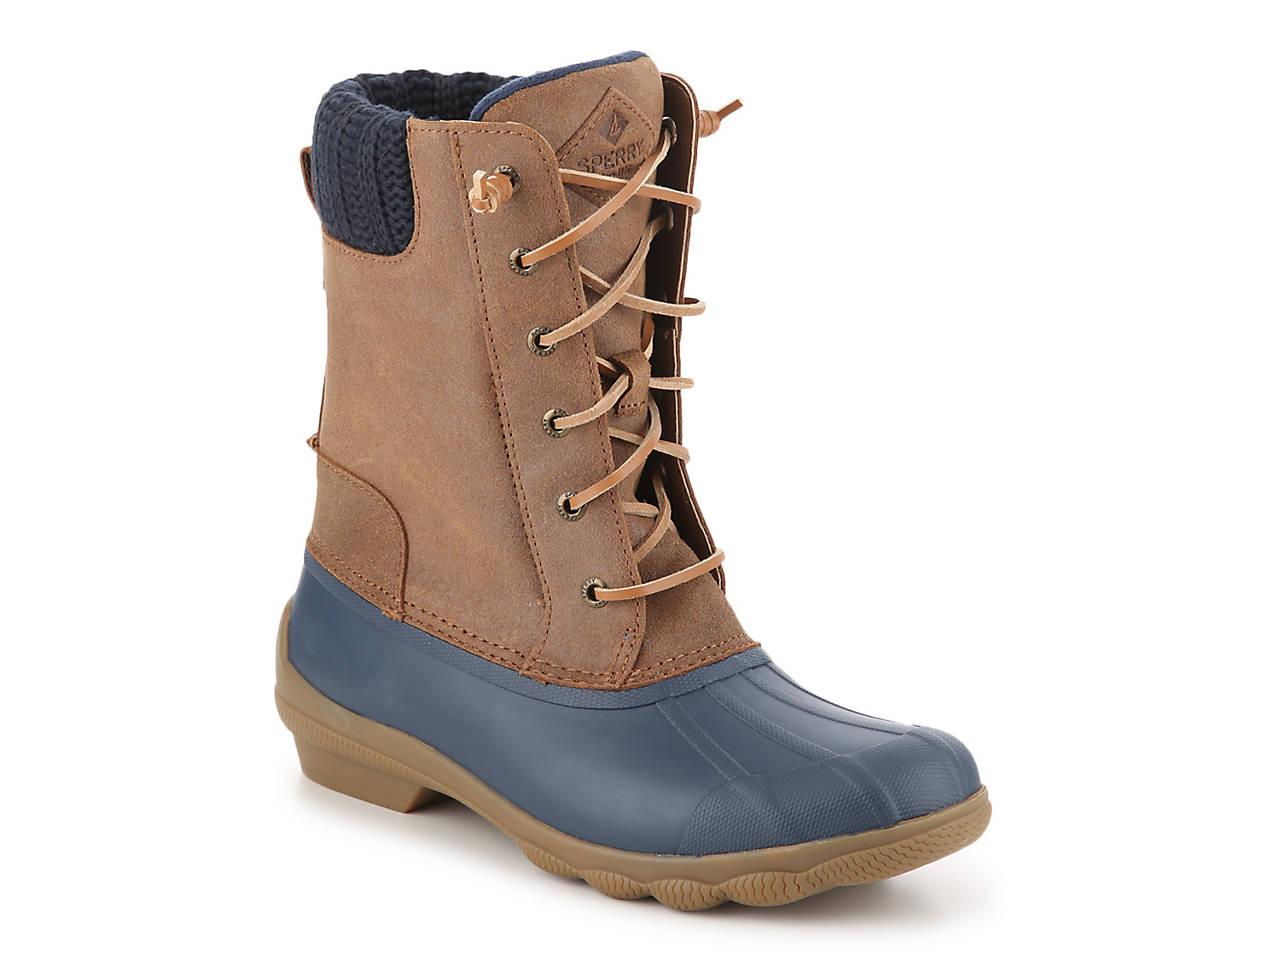 a6526bd8fb2 Sperry Top-Sider Syren Misty Duck Boot Women s Shoes